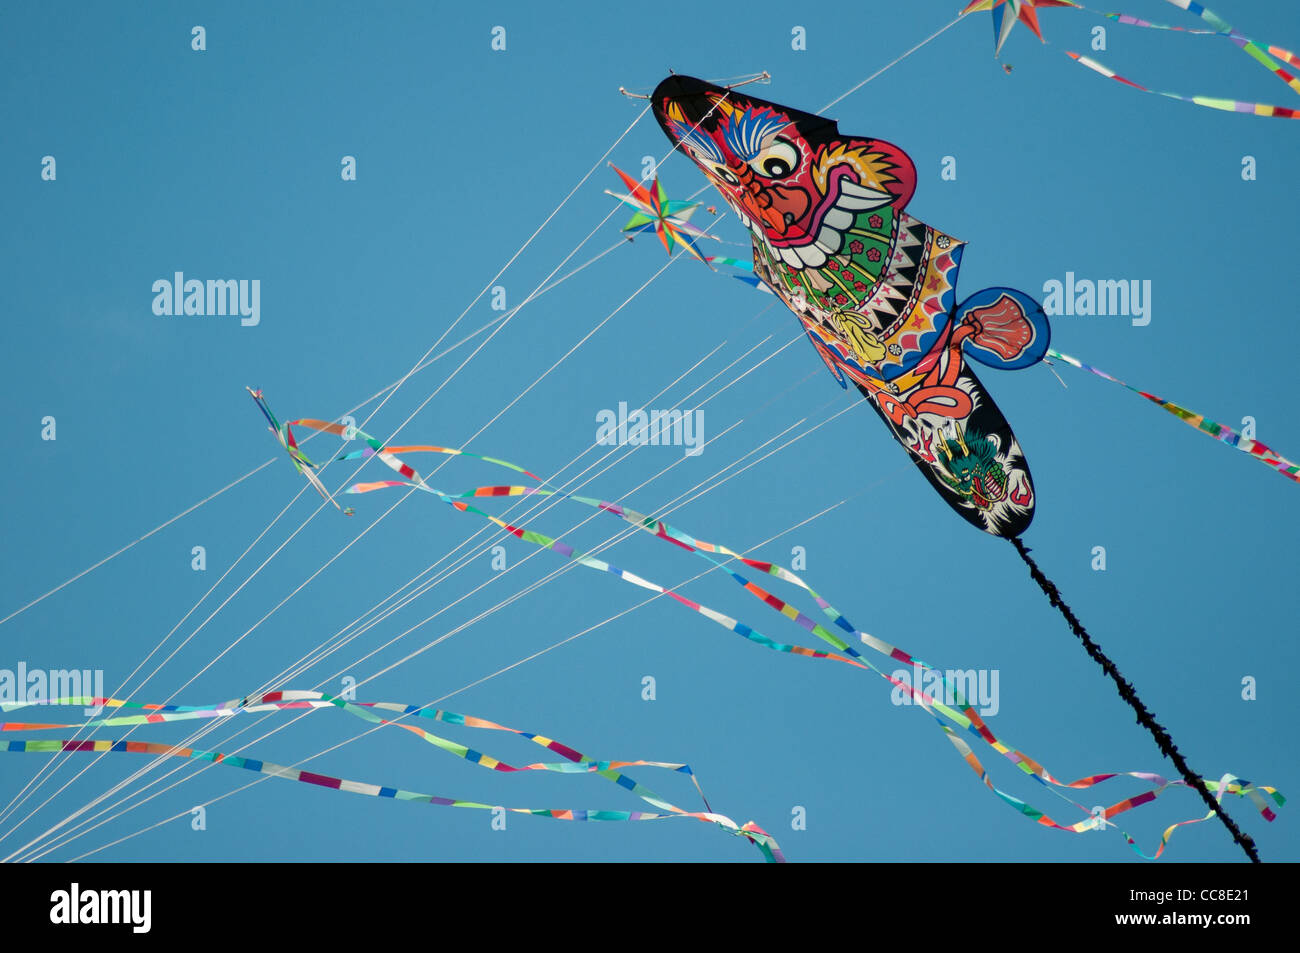 Variety of kites flying against a blue sky - Stock Image